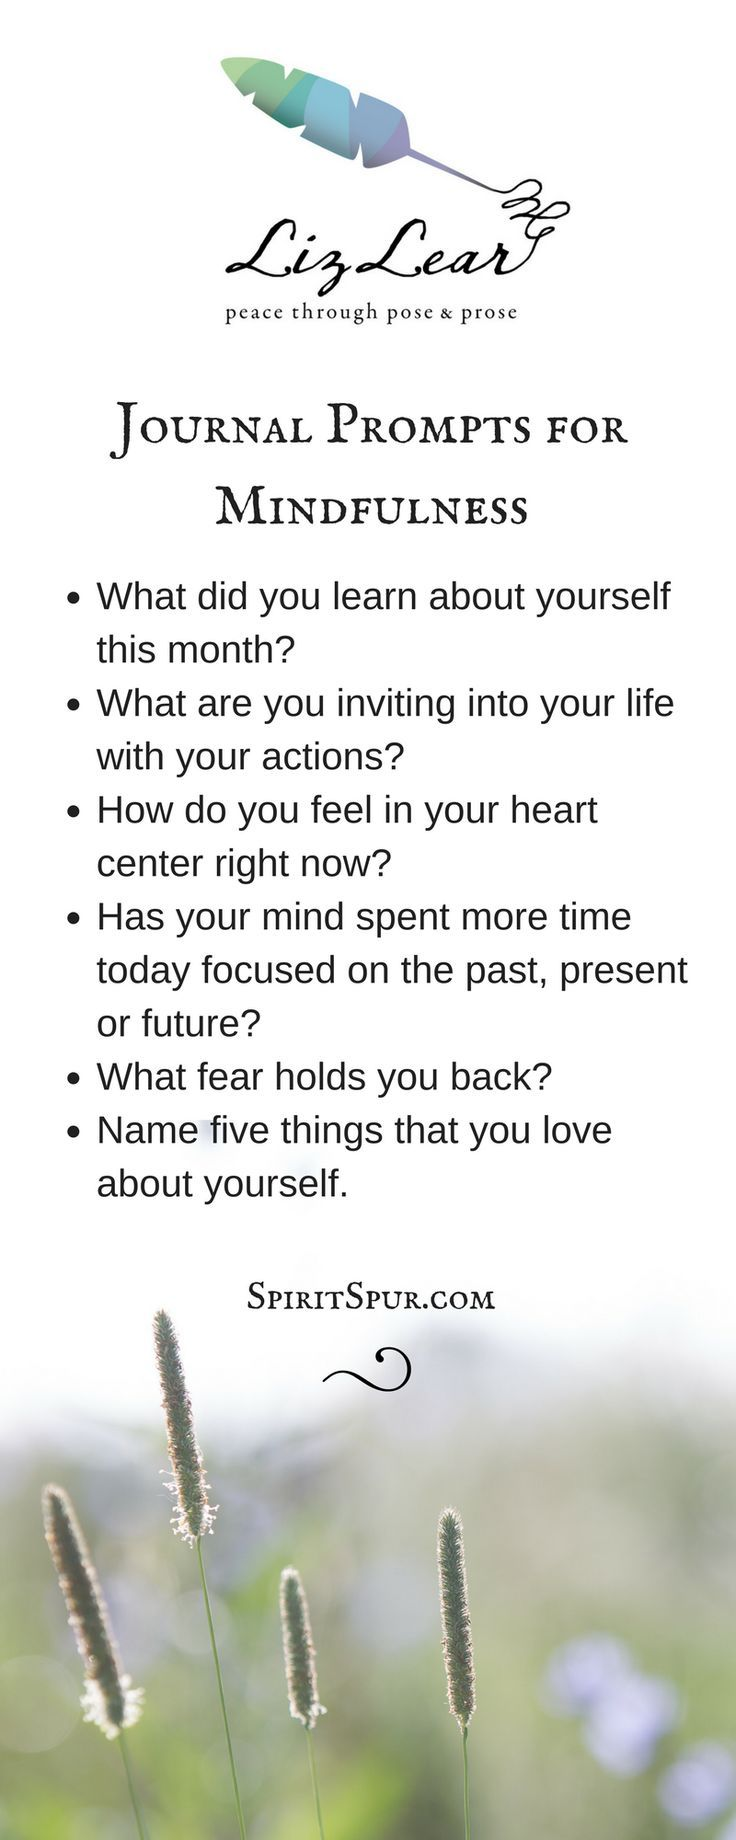 Yoga-inspired journal writing prompts from Liz Lear | Free Cultivate Contentment journal writing guide | http://SpiritSpur.com blog at the intersection of yoga mat and journal page